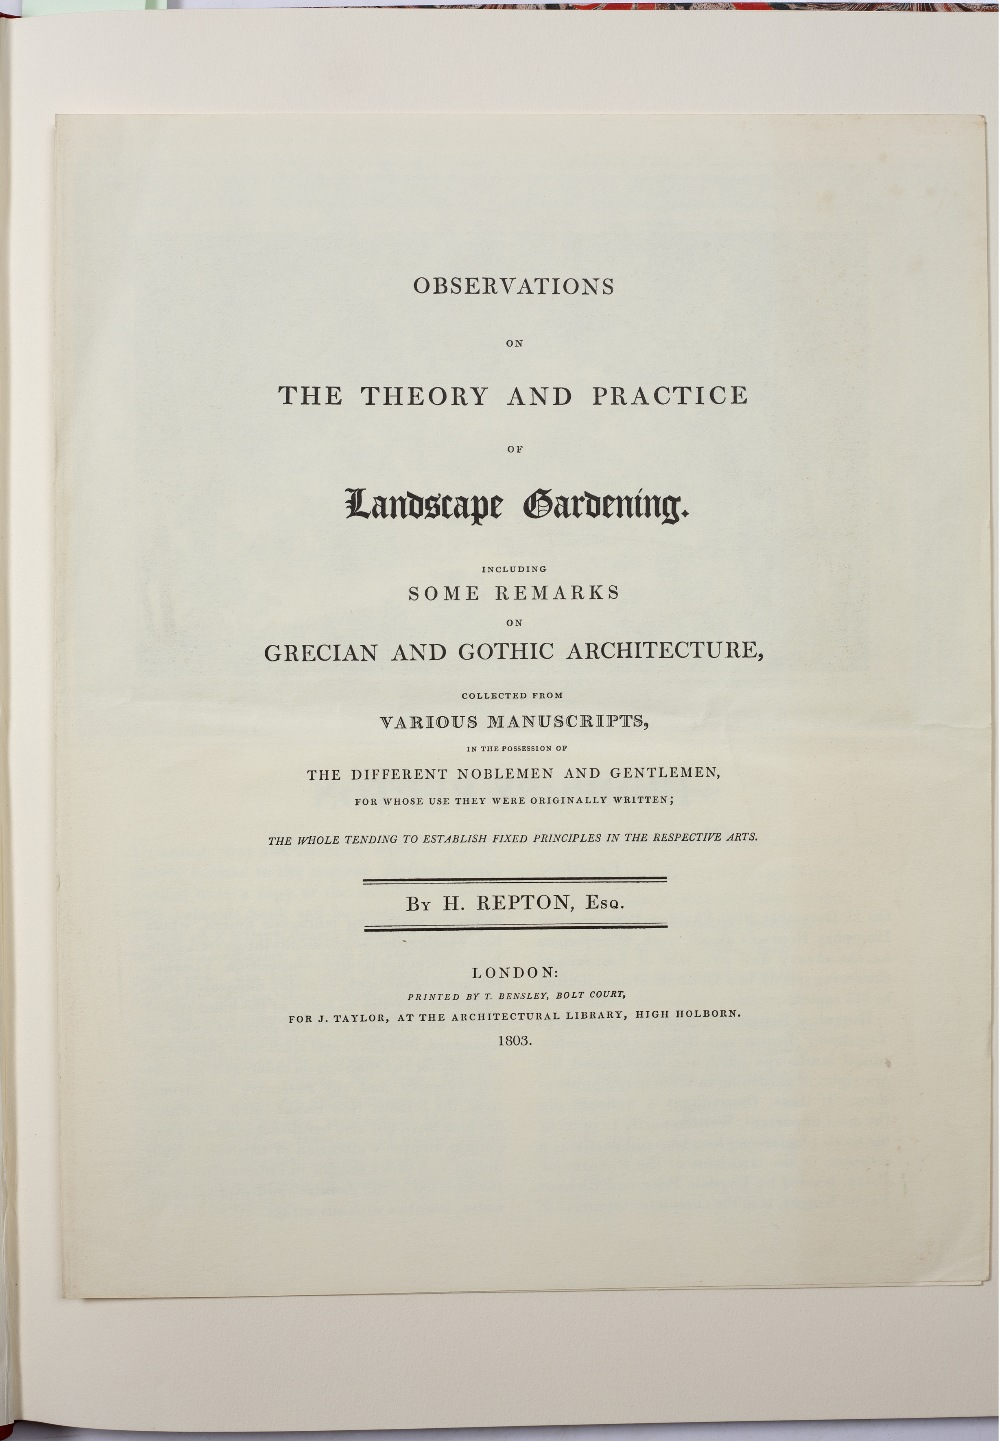 REPTON, Humphrey, The Red Books of Humphrey Repton, 4 vols. Facsimile, limited Ed. No. 91/500 to - Image 3 of 6